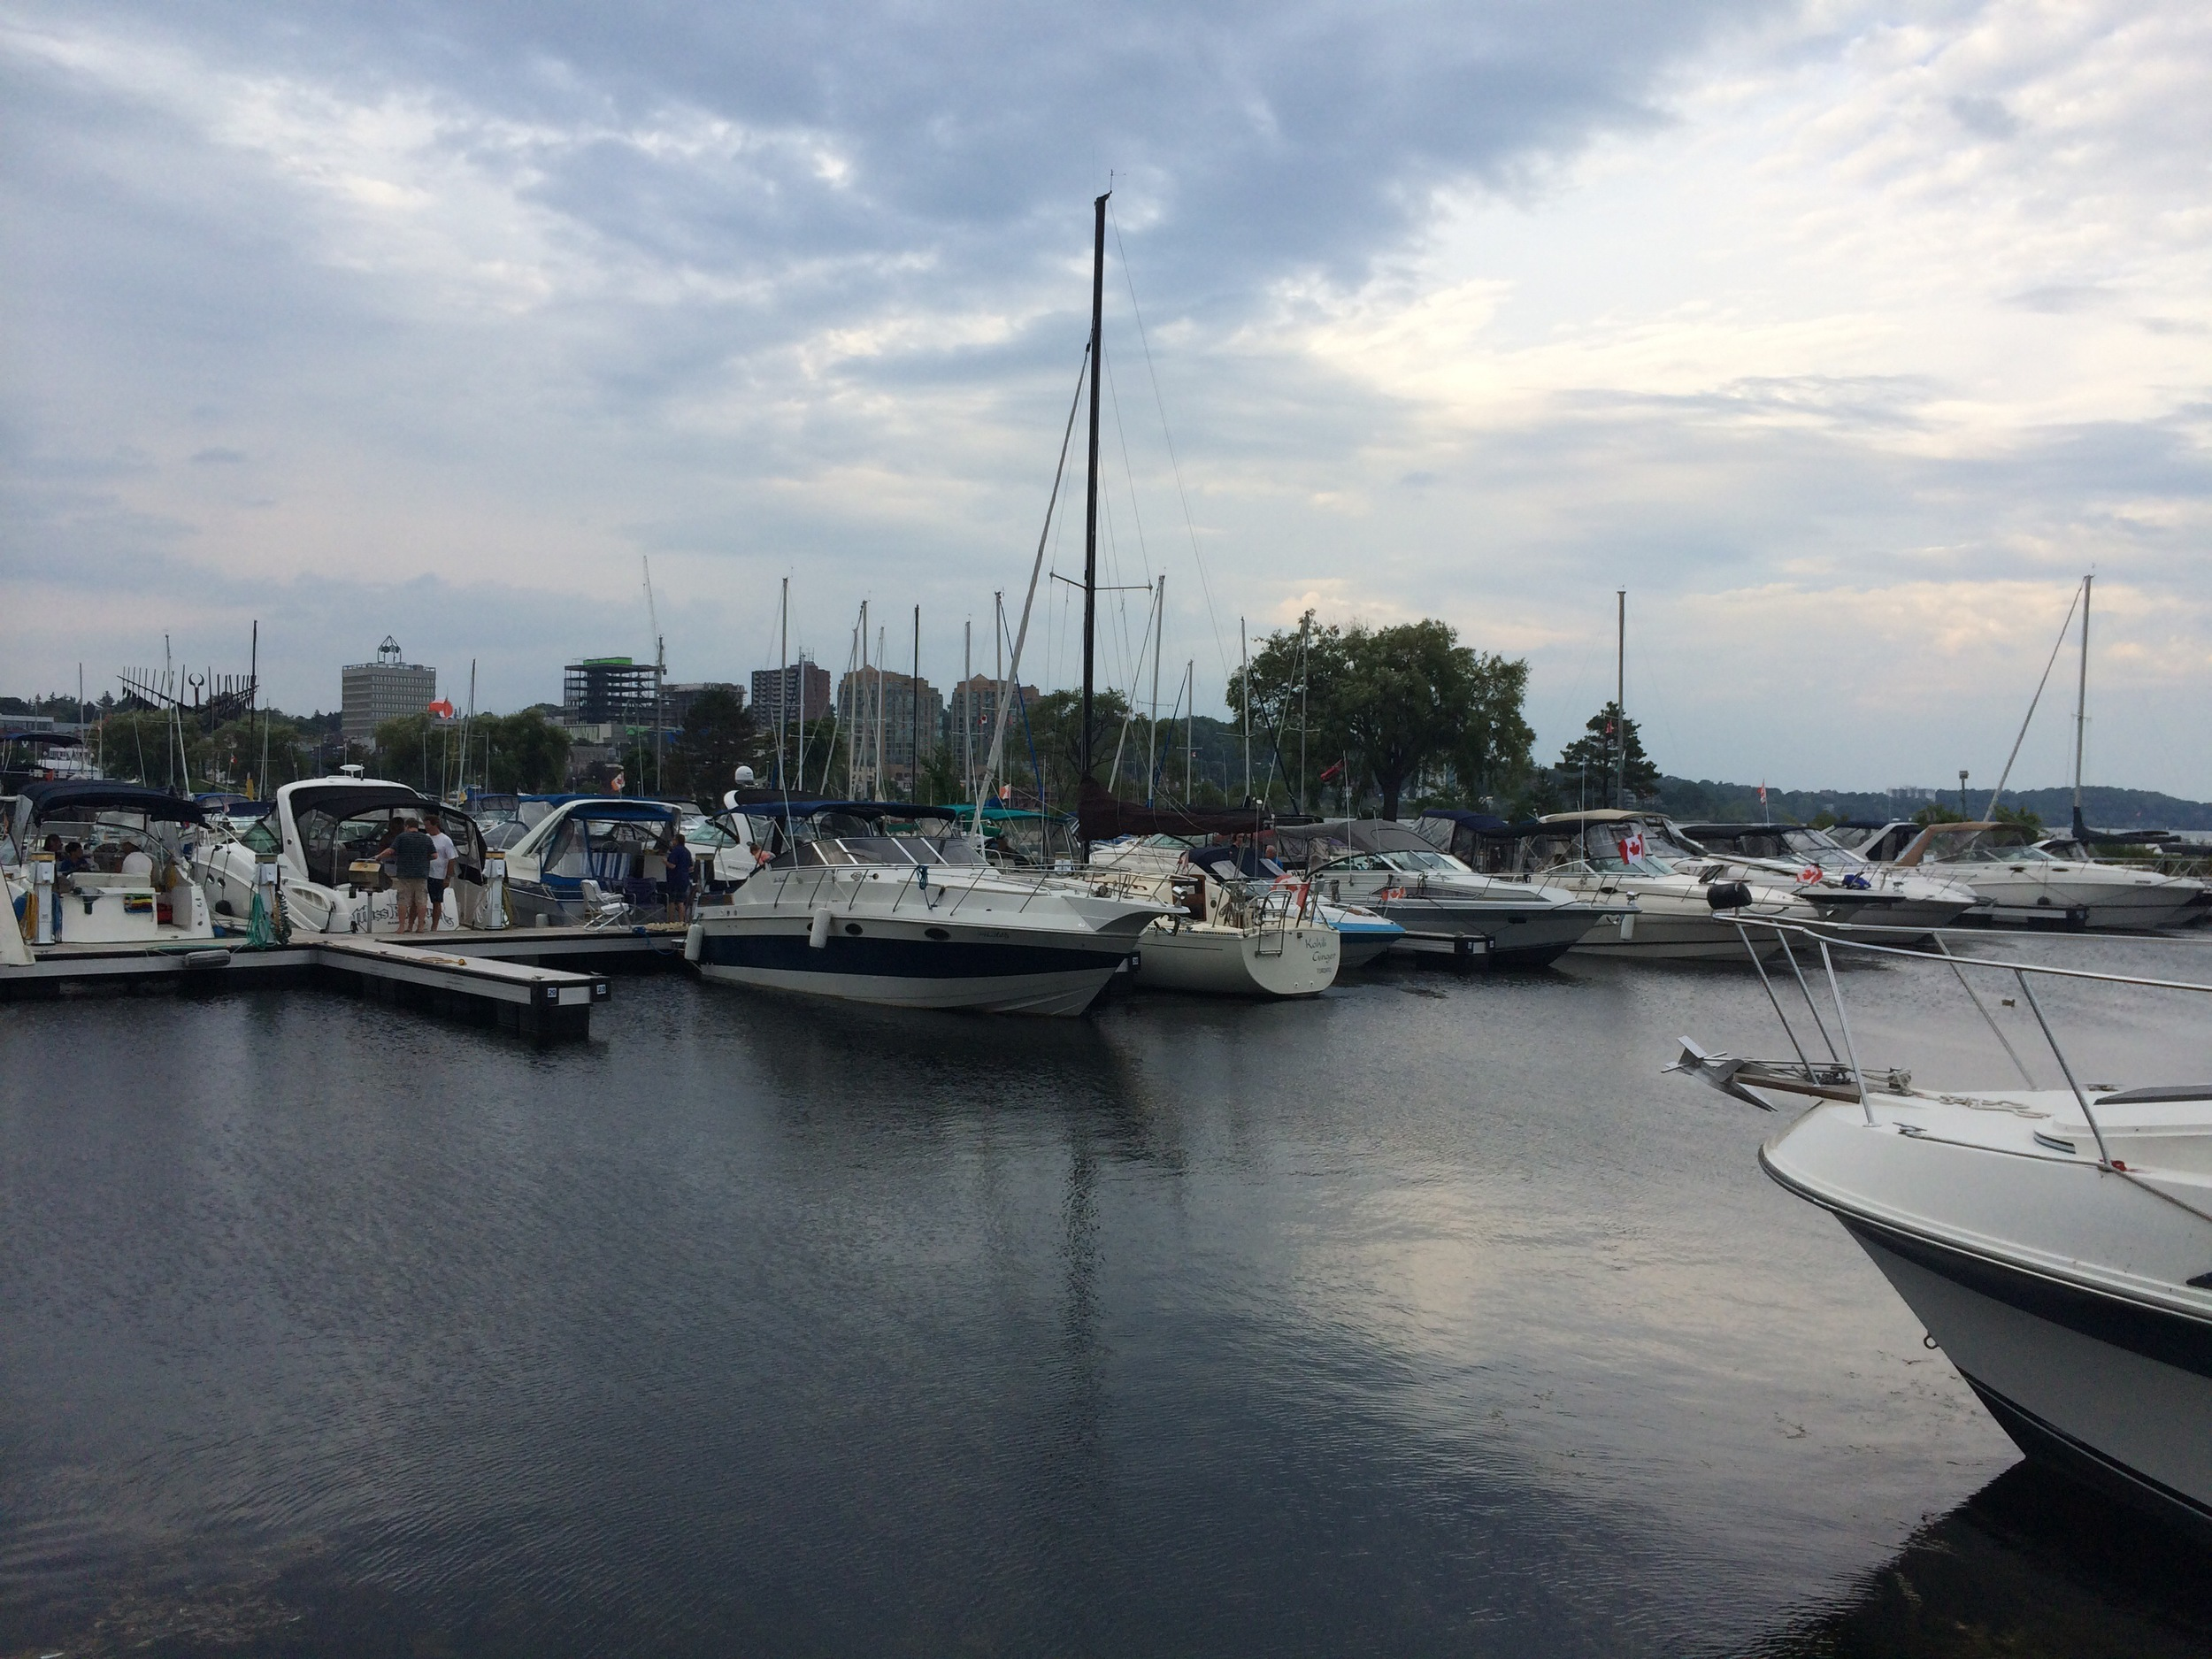 Pictures from downtown Barrie will vary.